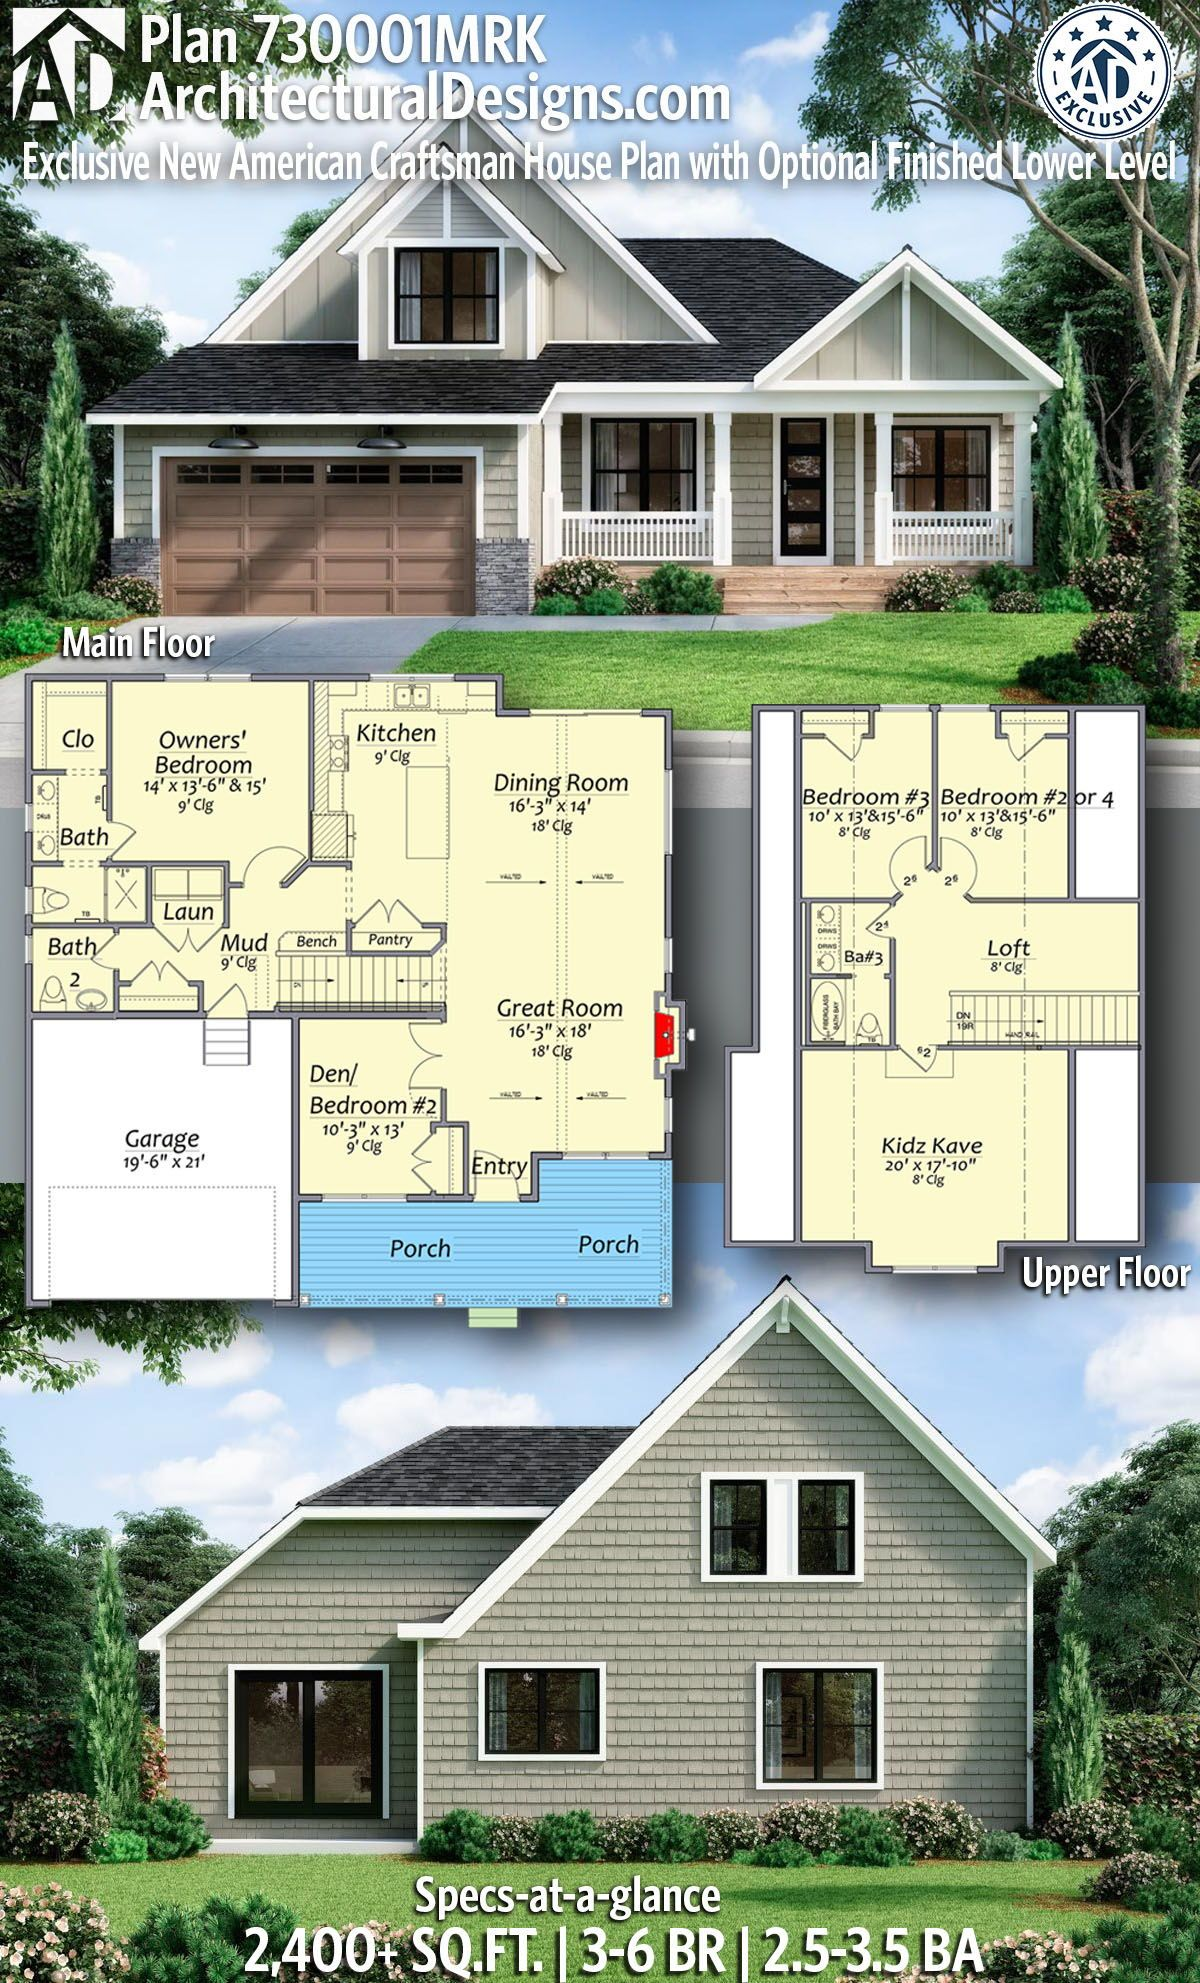 Plan 730001mrk Exclusive New American Craftsman House Plan With Optional Finished Lower Level In 2020 Beautiful House Plans Craftsman House Plan Craftsman House